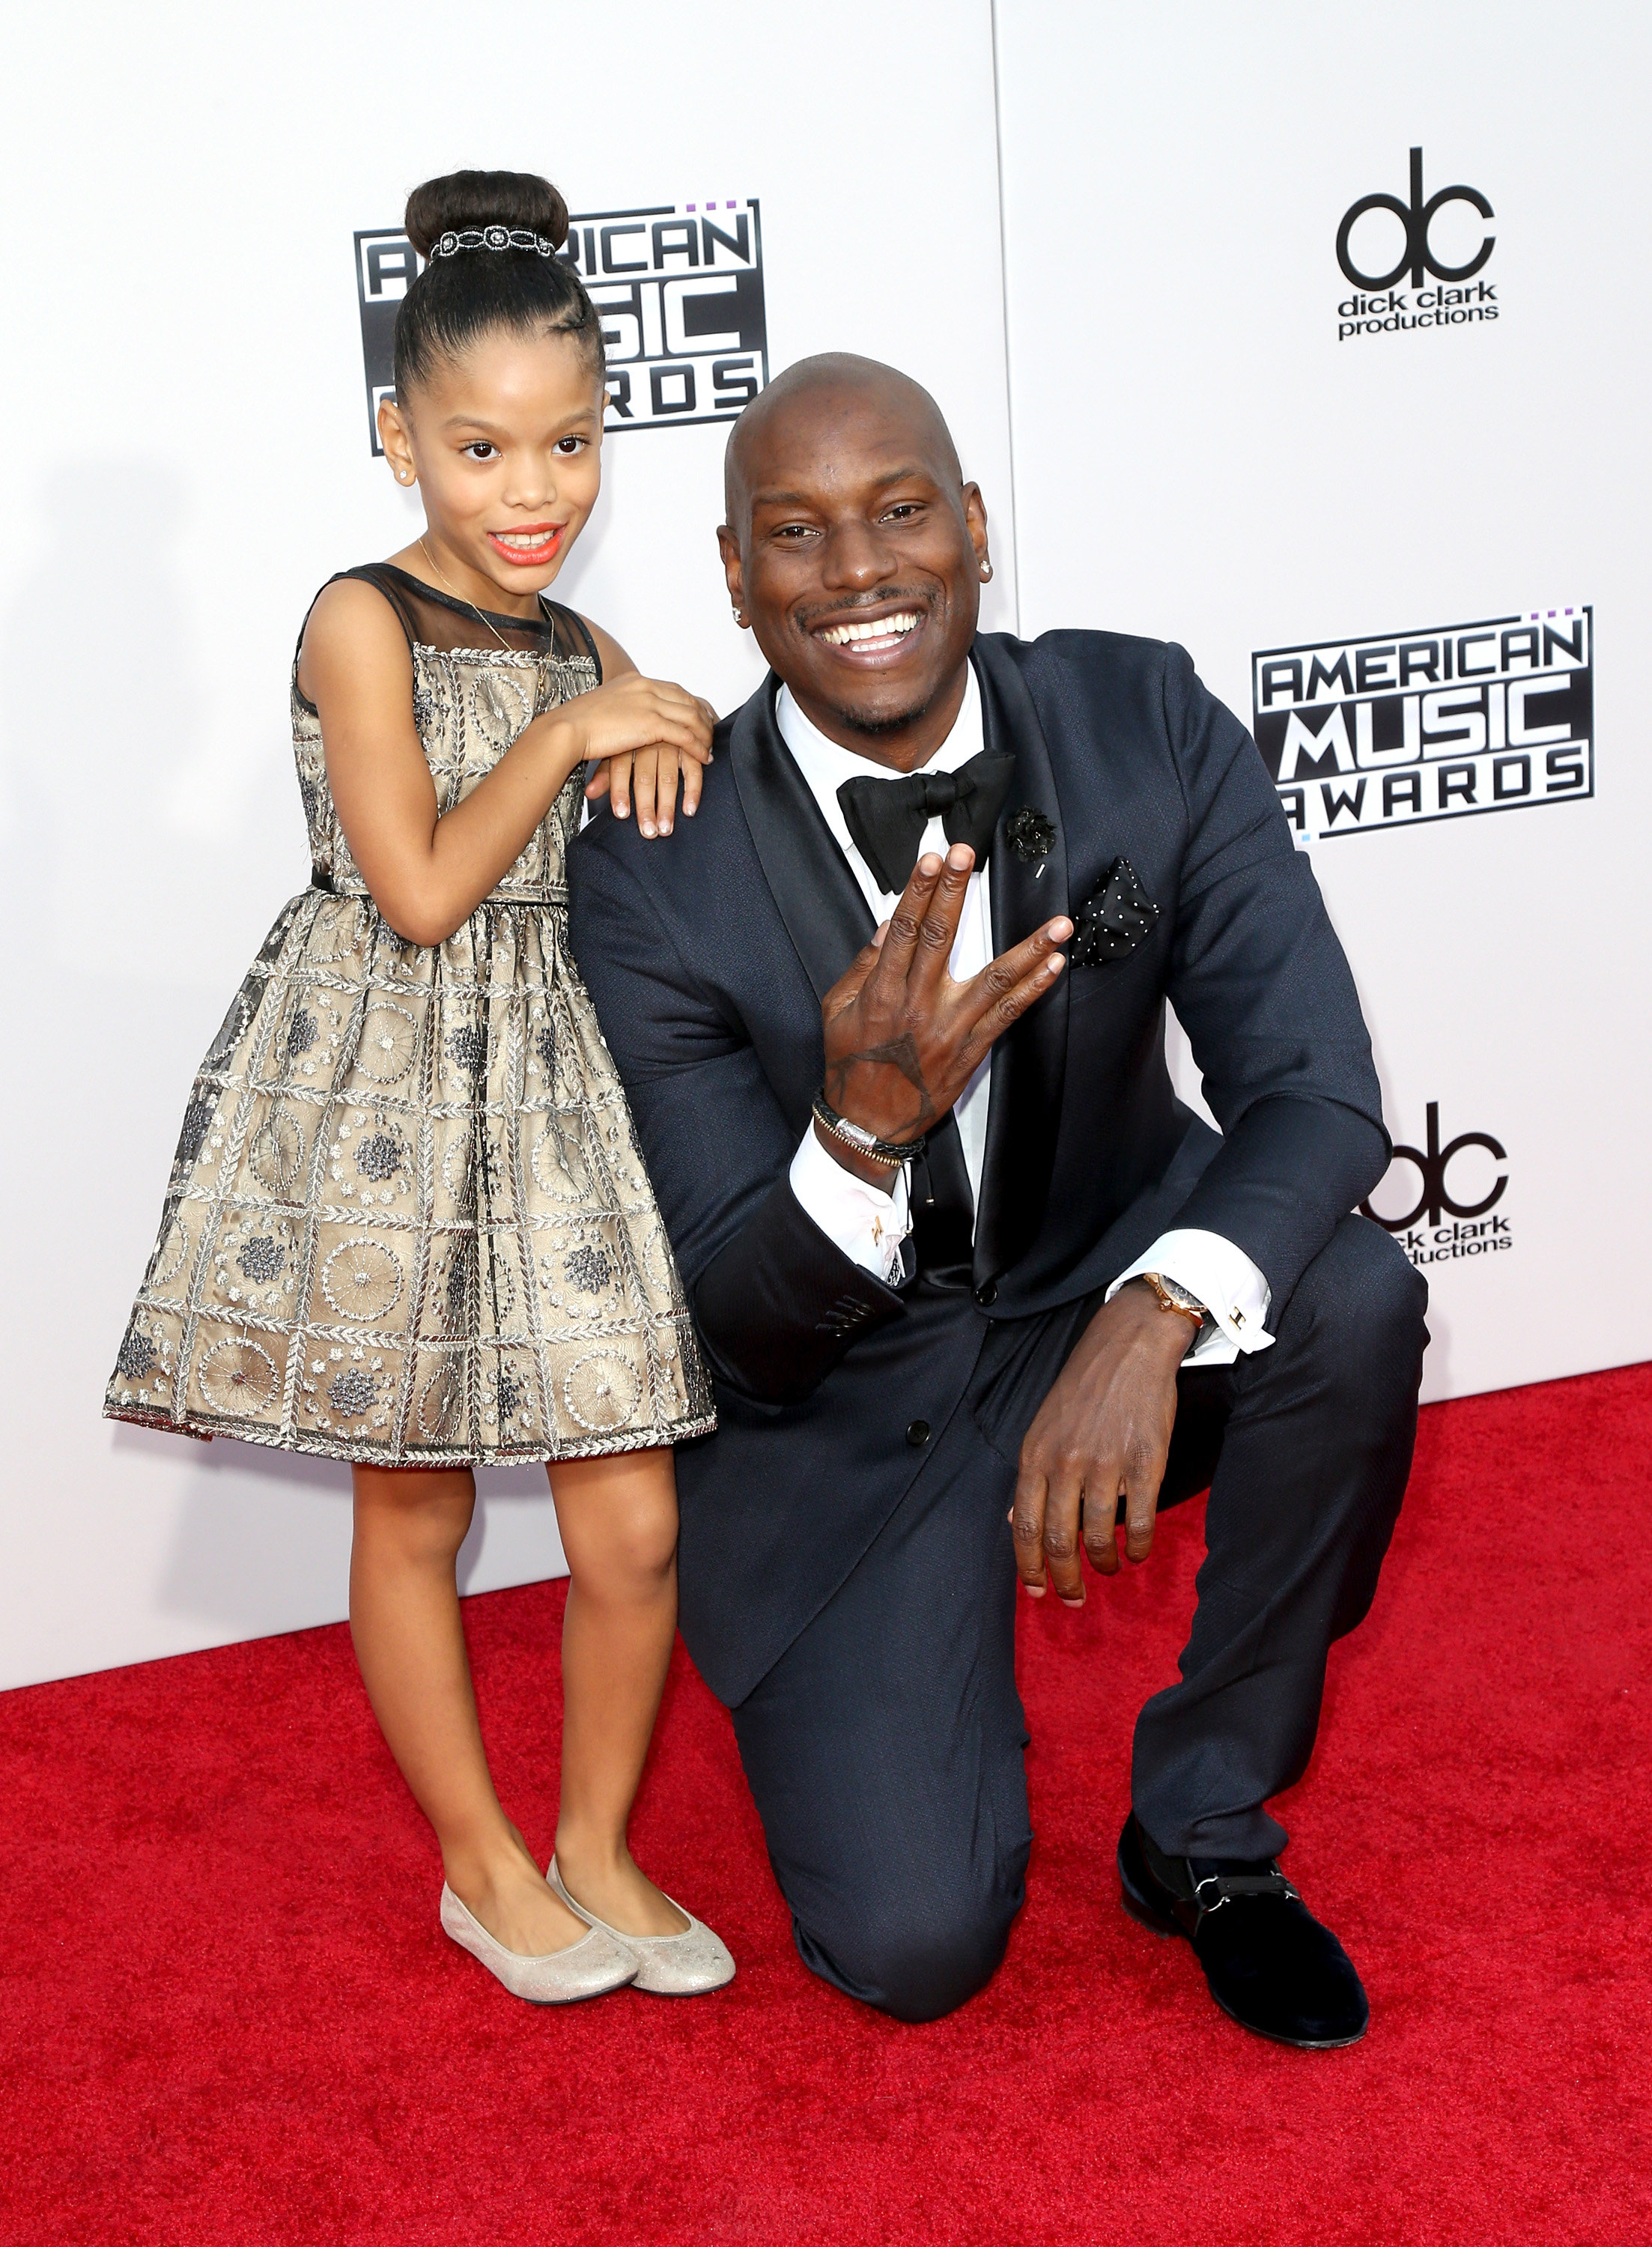 LOS ANGELES, CA - NOVEMBER 22:  Recording artist Tyrese Gibson and Shayla Gibson arrive at the 2015 American Music Awards at Microsoft Theater on November 22, 2015 in Los Angeles, California.  (Photo by David Livingston/Getty Images)